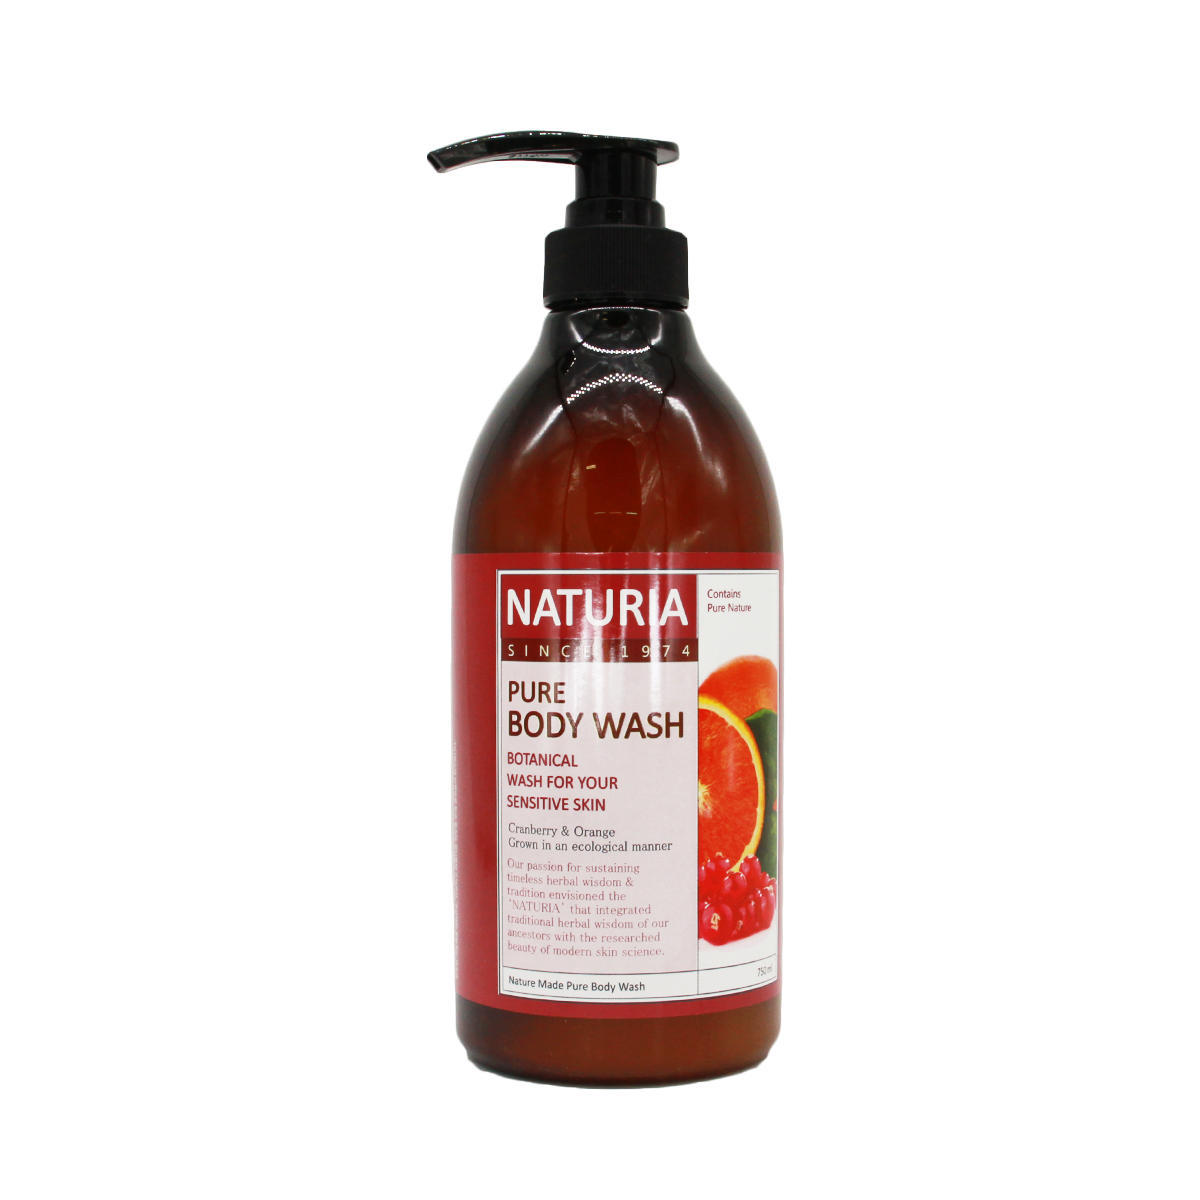 Гели для душа Гель для душа клюква/апельсин Pure body wash (Cranberry & Orange), 750 мл import_files_5d_5d49f7f05ca711e980fb3408042974b1_03e903725f0611e980fc3408042974b1.jpg